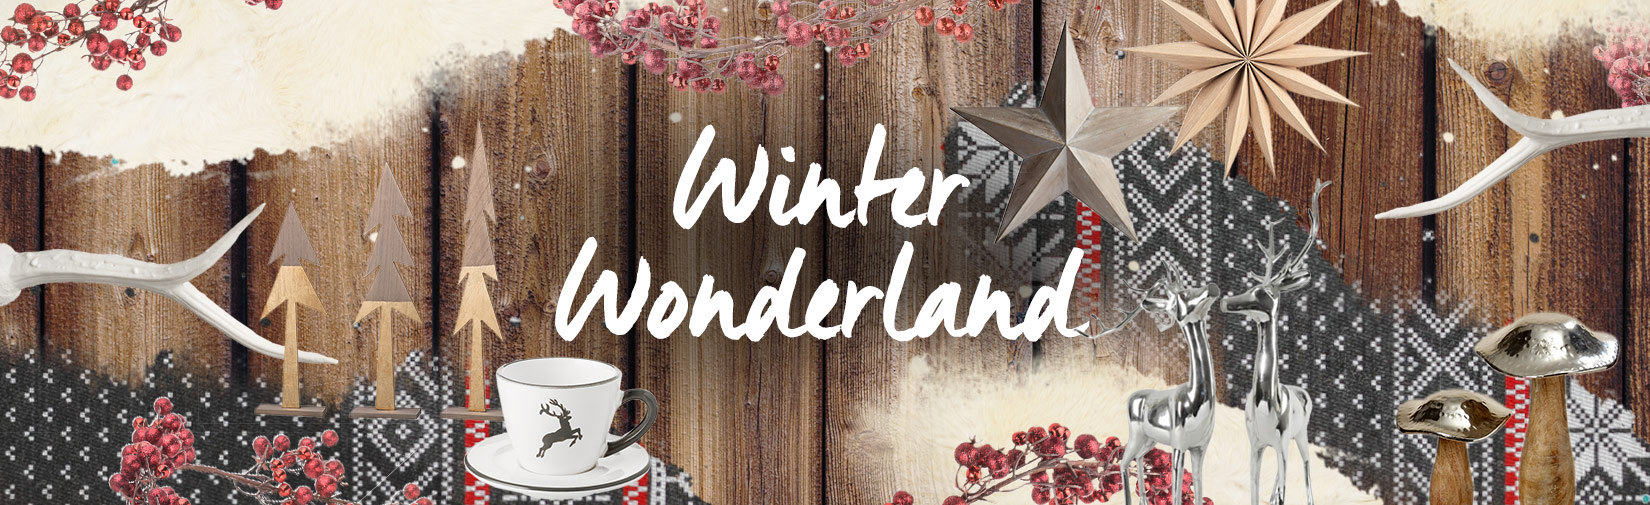 Landingpage winter wonderland